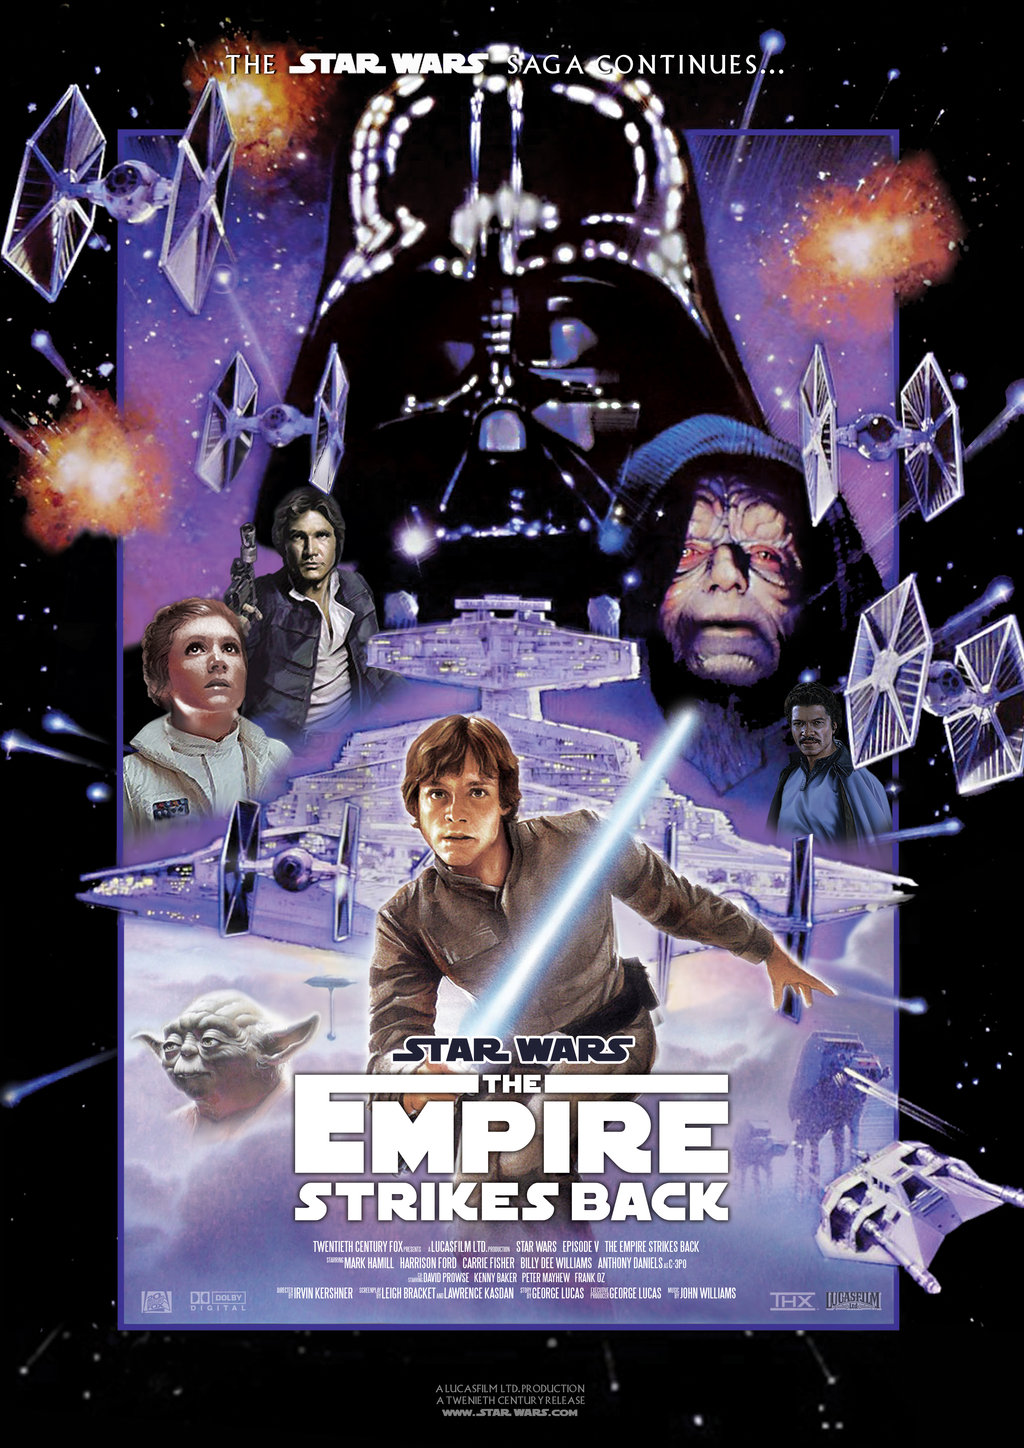 Star Wars Episode V The Empire Strikes Back Wallpapers Movie Hq